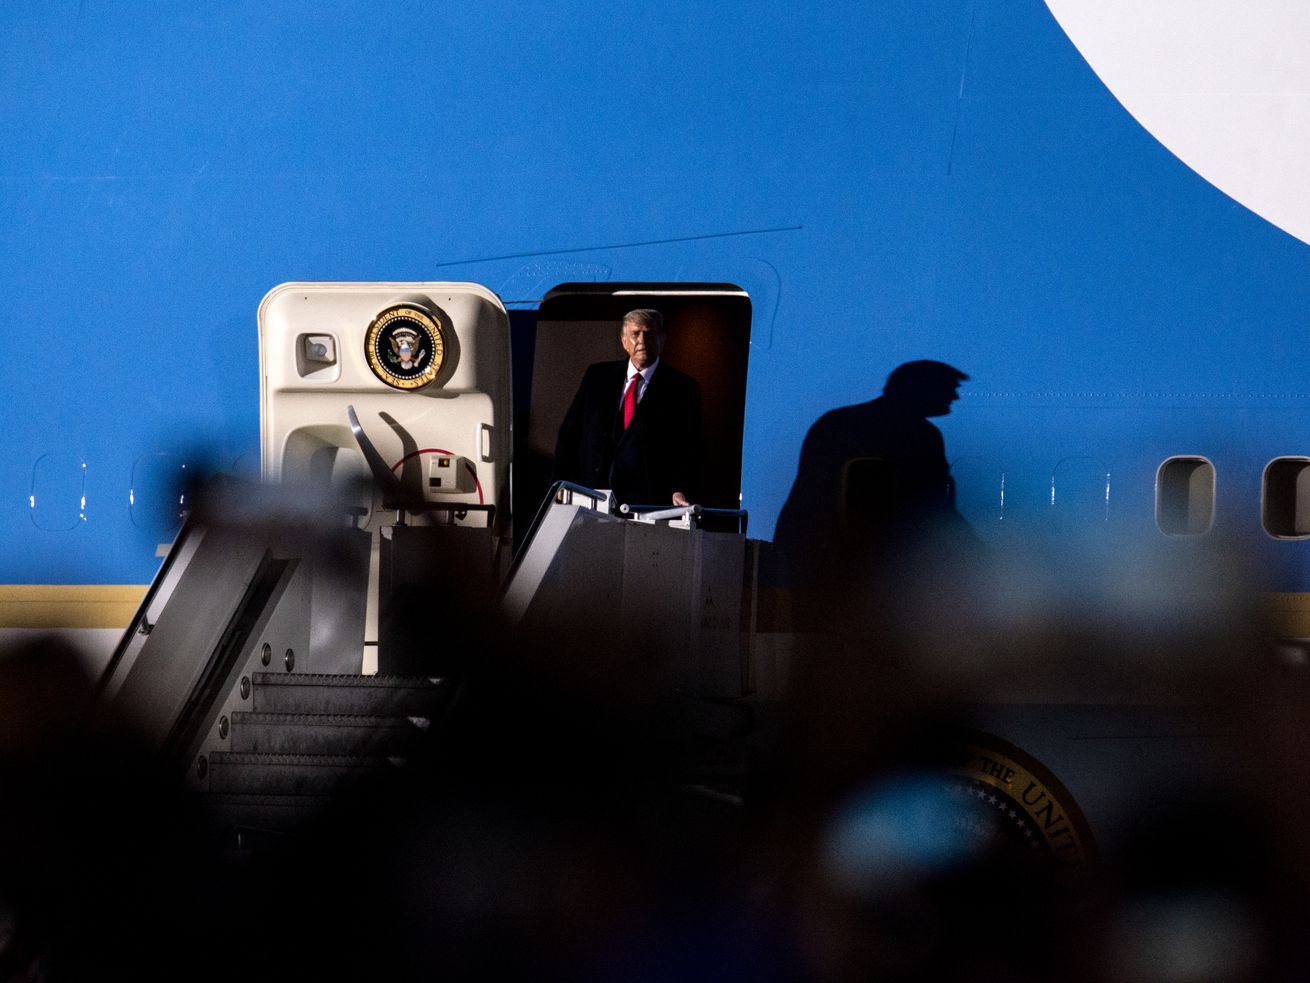 President Trump standing in the doorway of the Air Force One airplane.